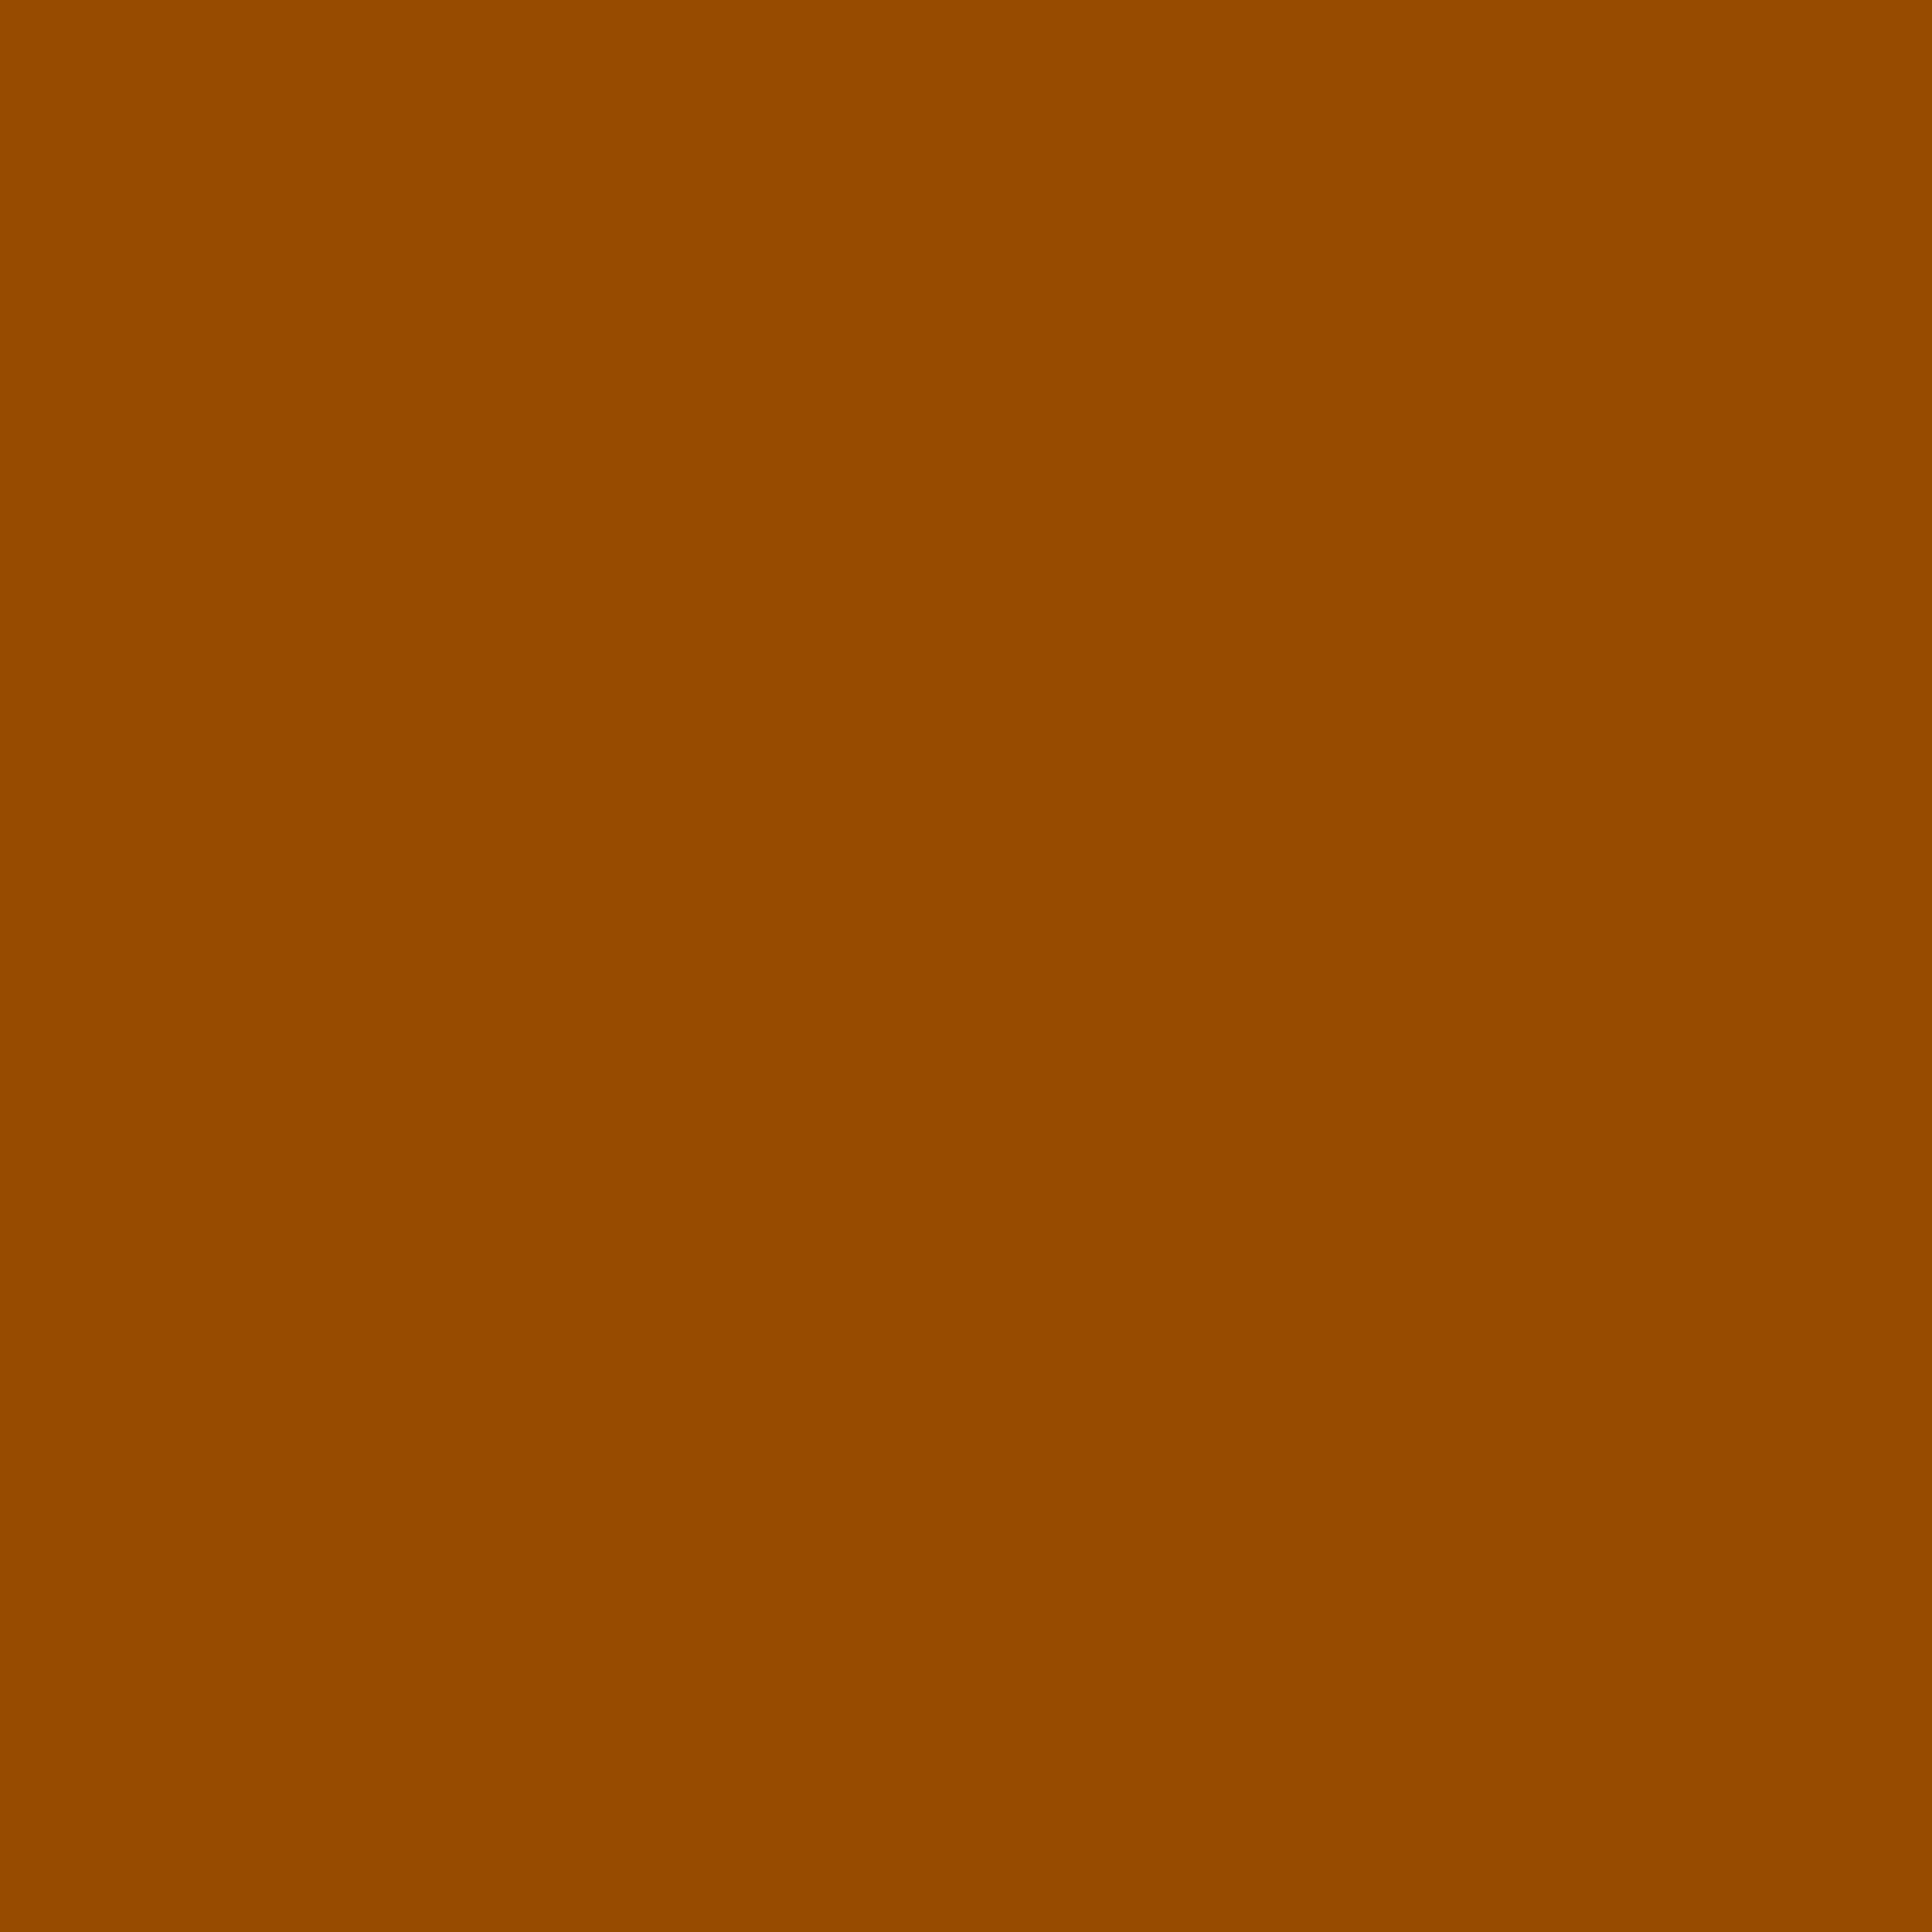 2732x2732 Brown Traditional Solid Color Background